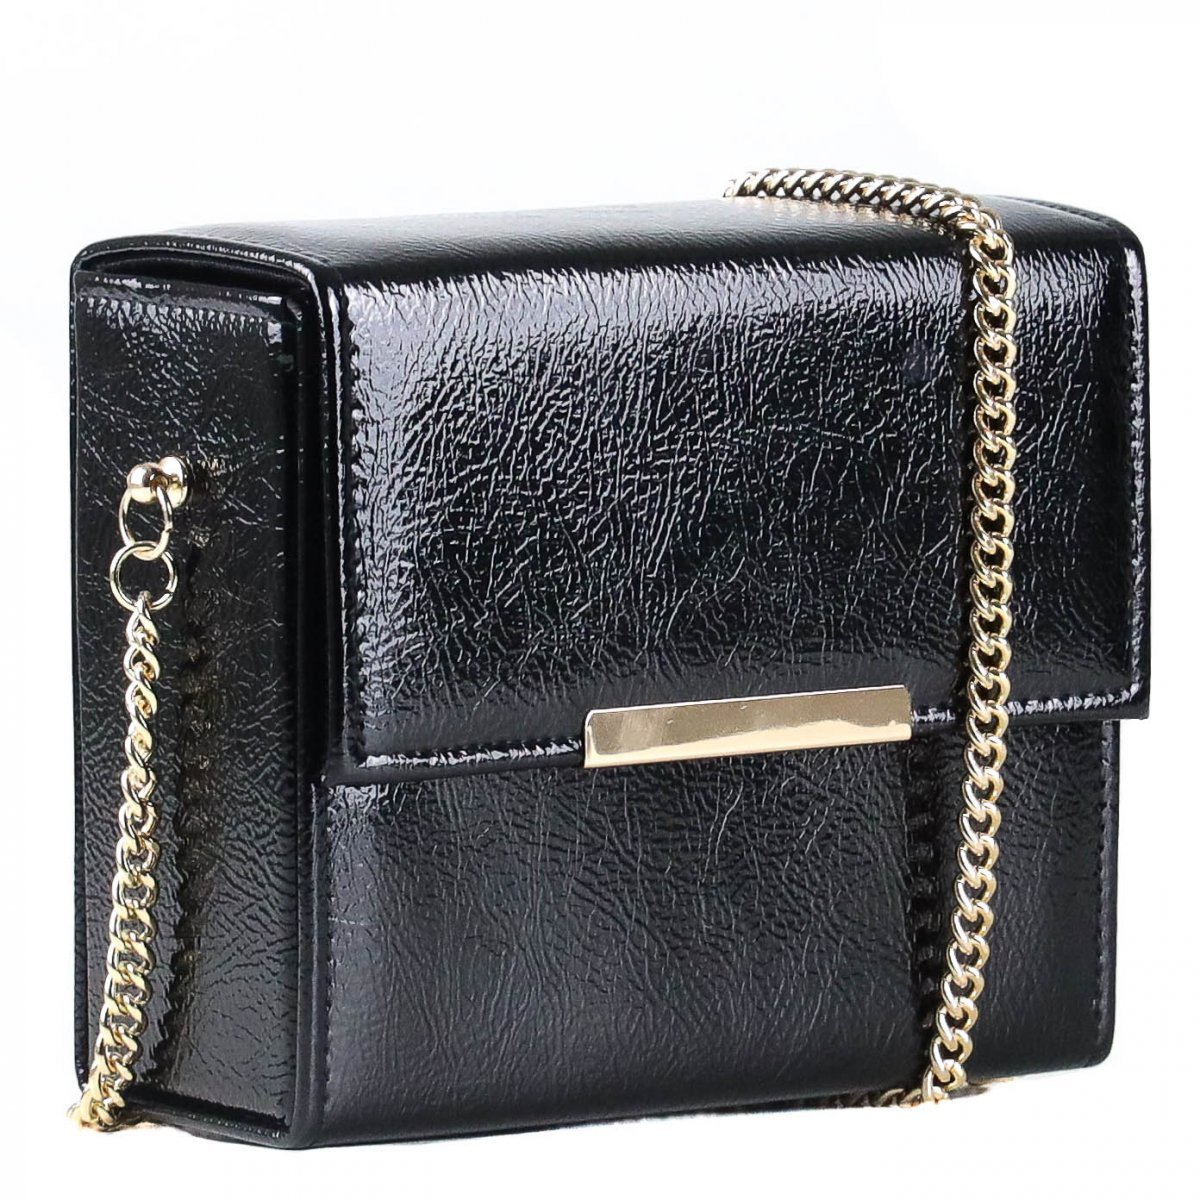 Bolsa Zariff Shoes Clutch Corrente Preto